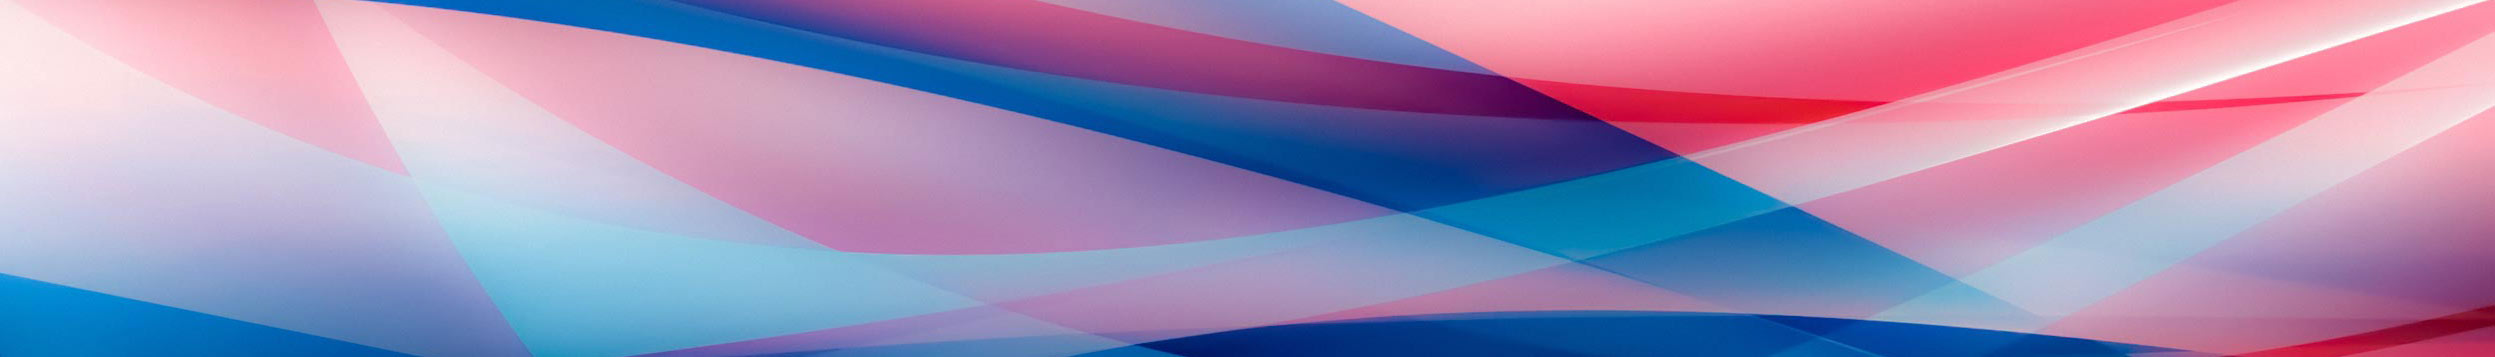 Abstract Czech Background